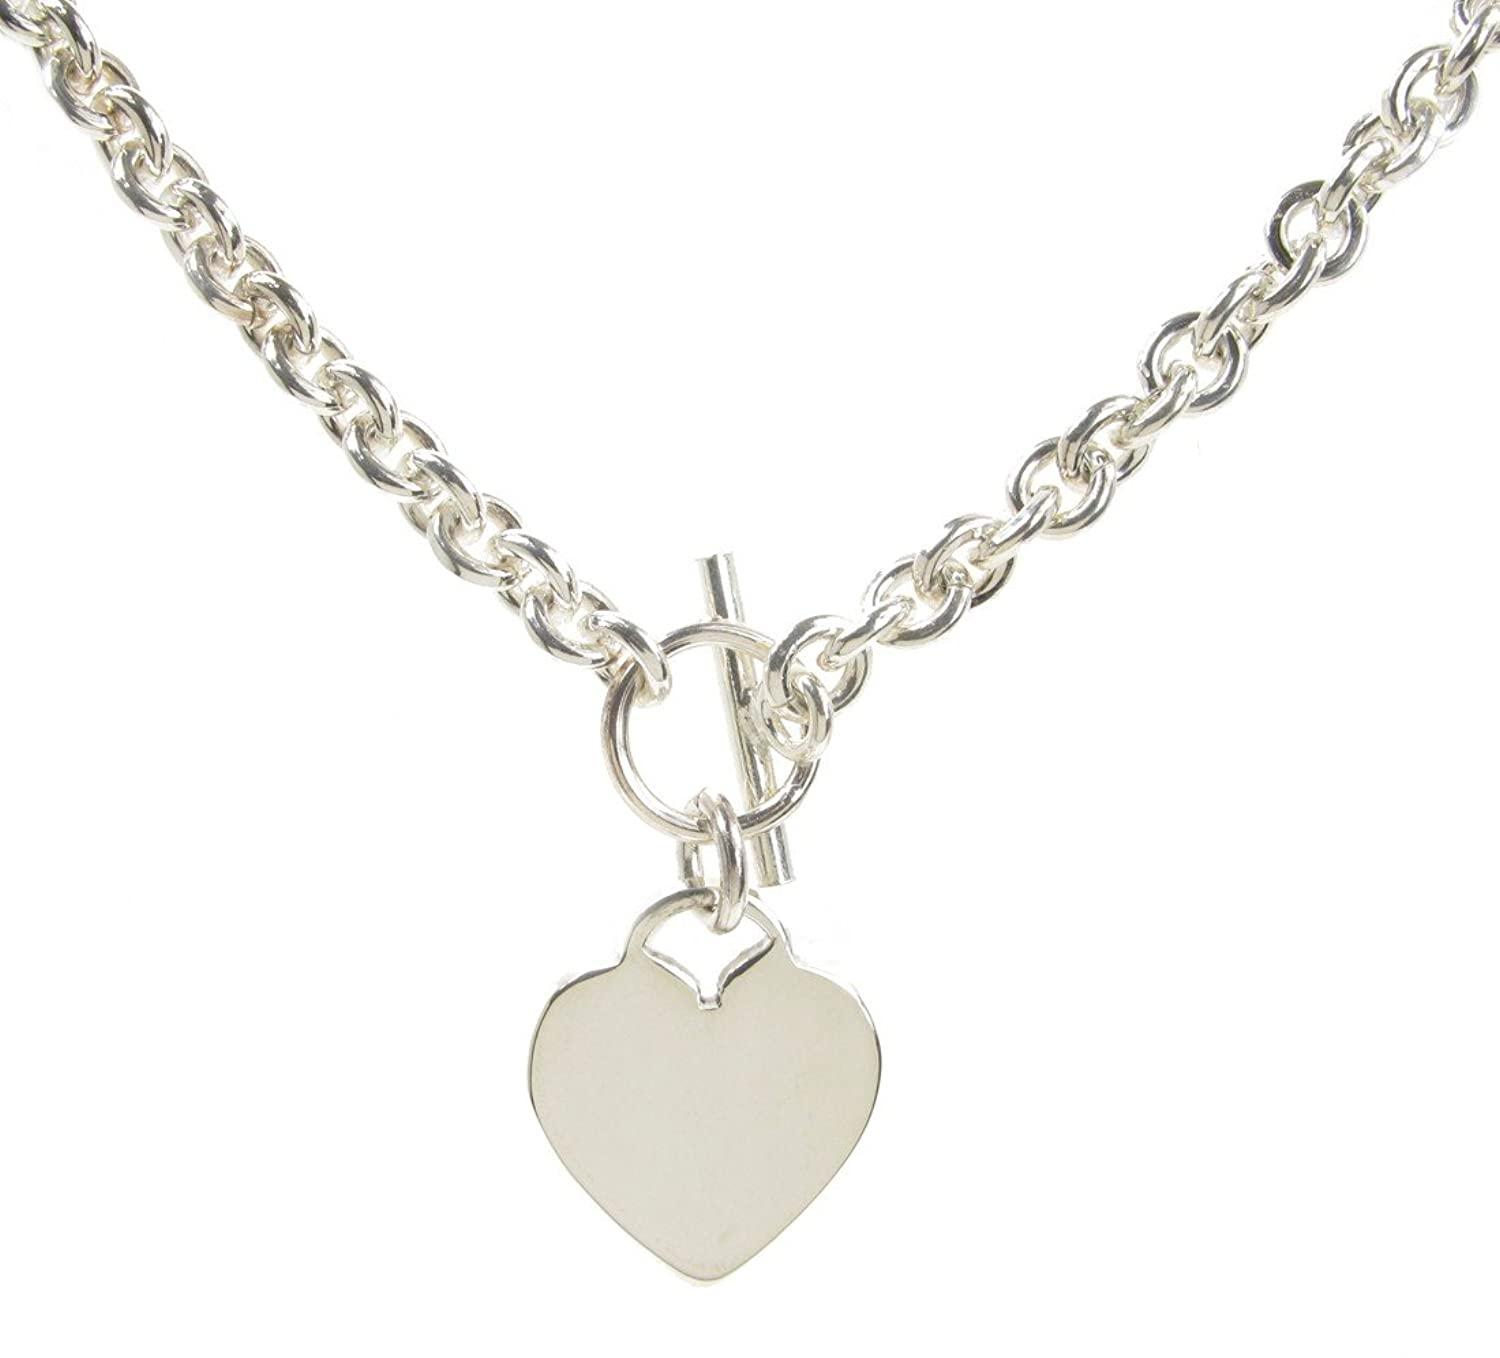 Sterling silver tiffany style heart charm necklace amazon sterling silver tiffany style heart charm necklace amazon jewellery aloadofball Choice Image